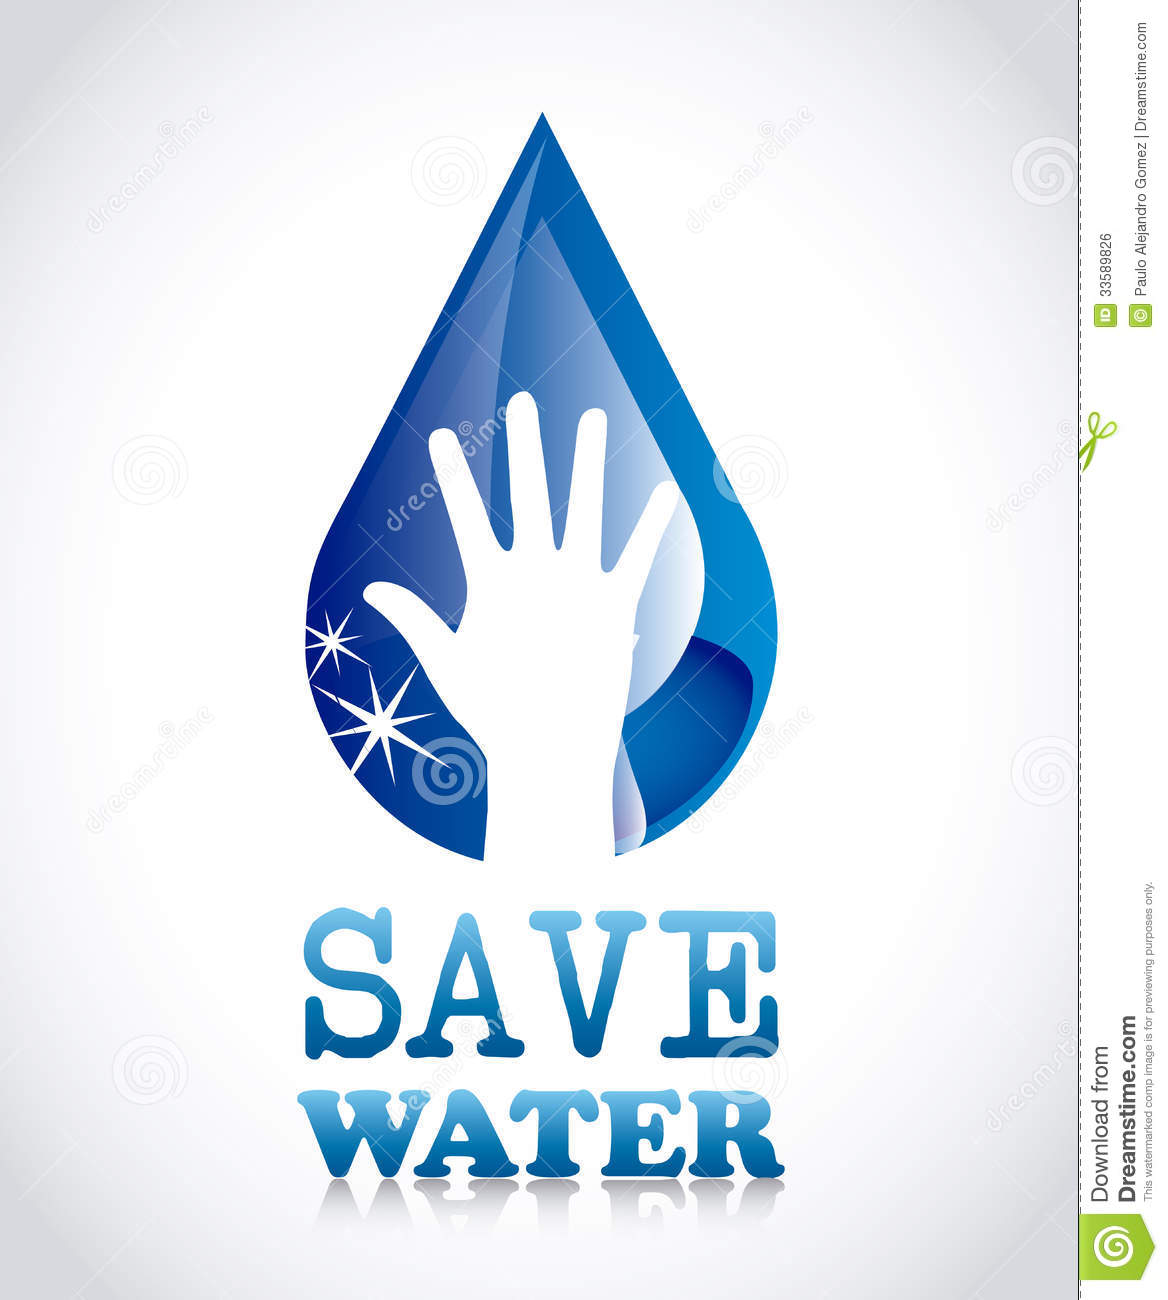 save water royalty stock image image  save water